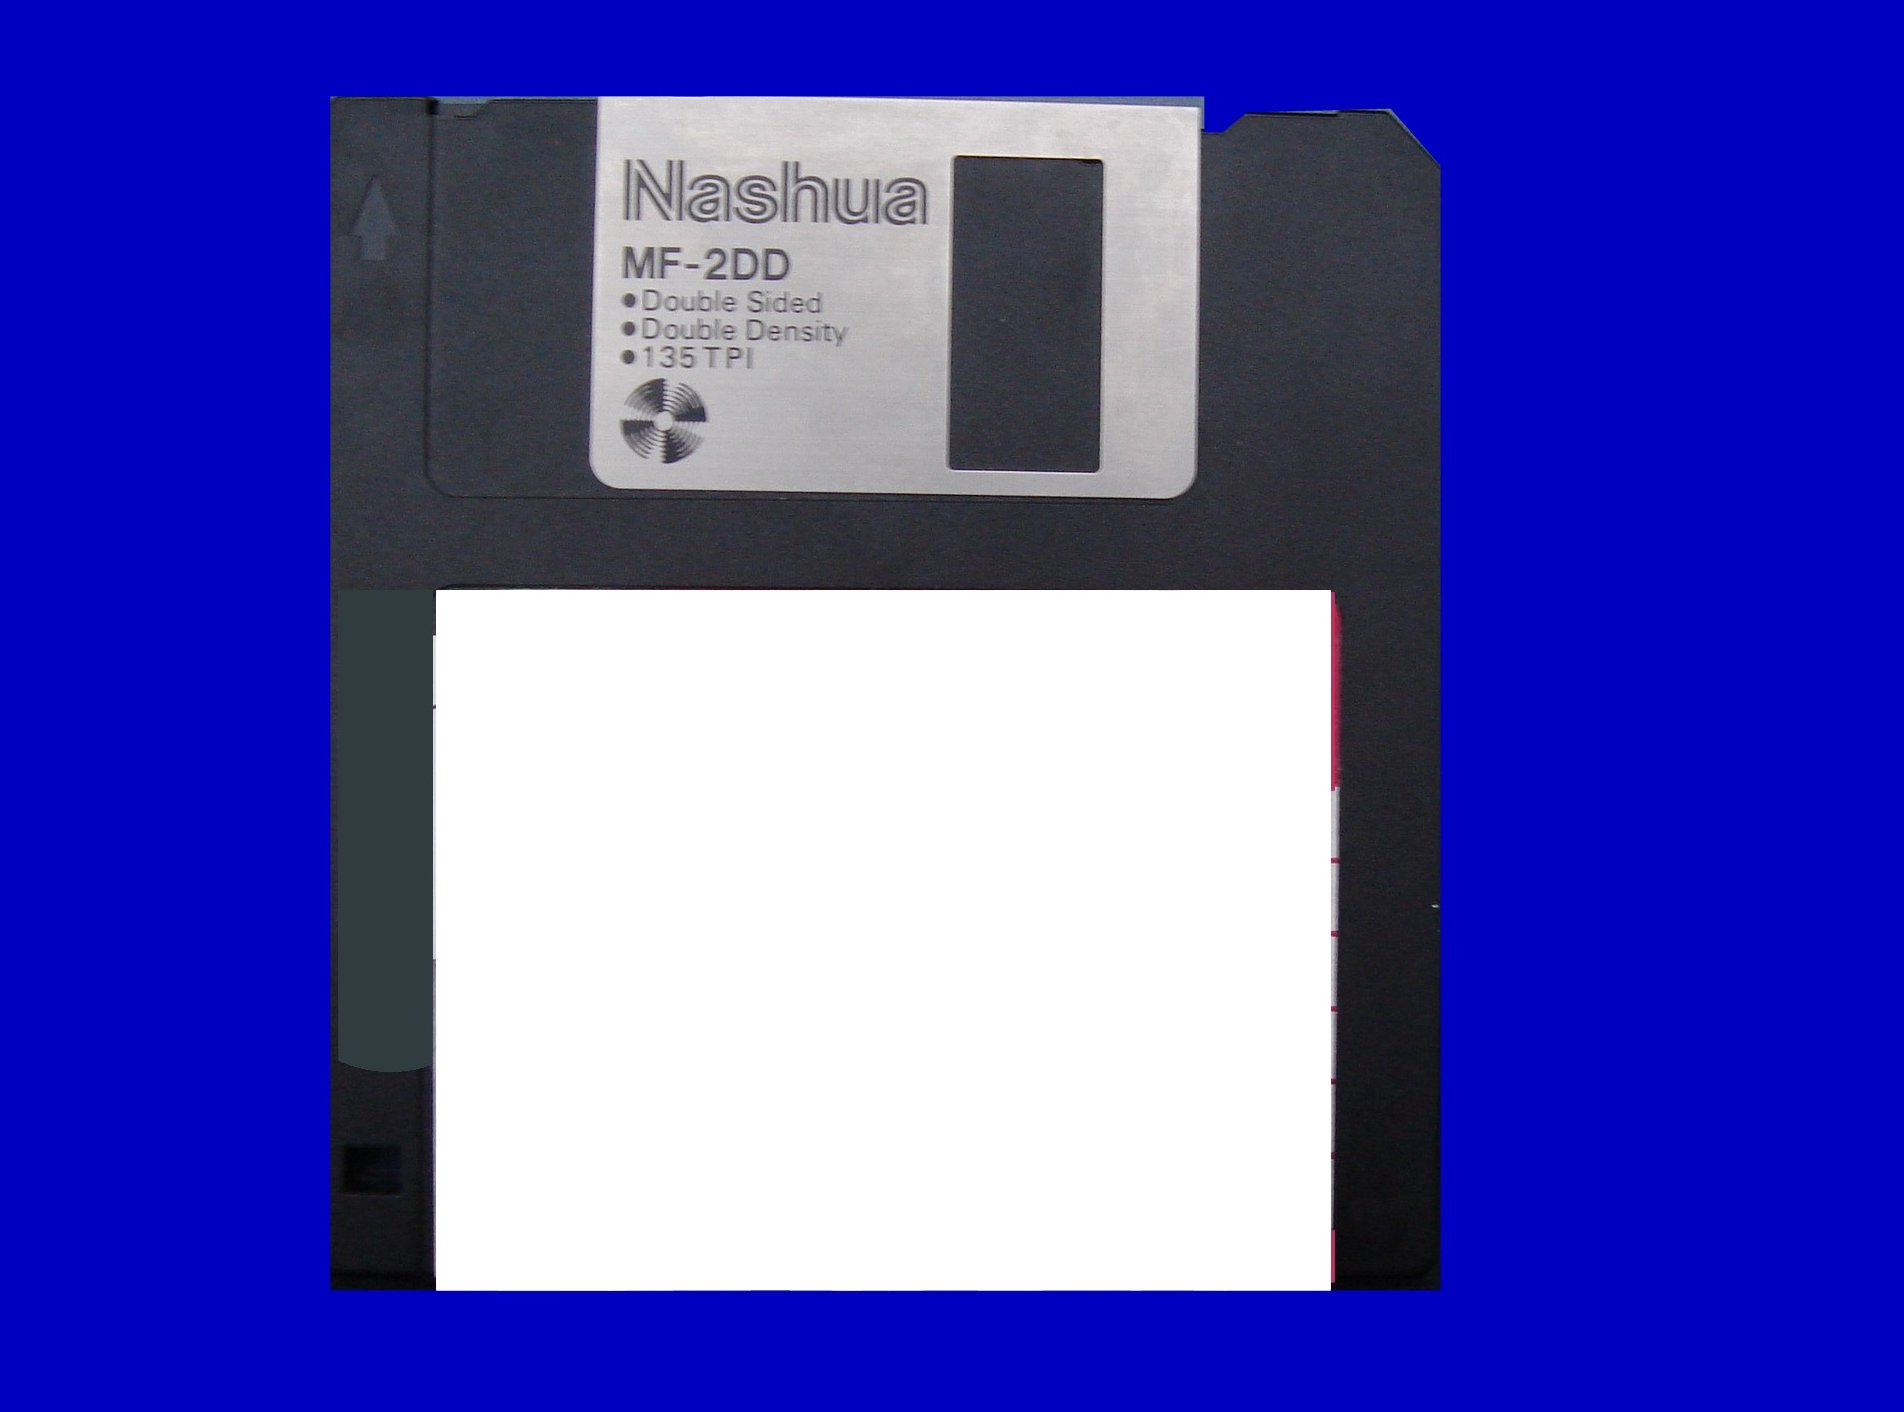 A Sony MFD-2DD floppy disk that contained Programming Source Code.